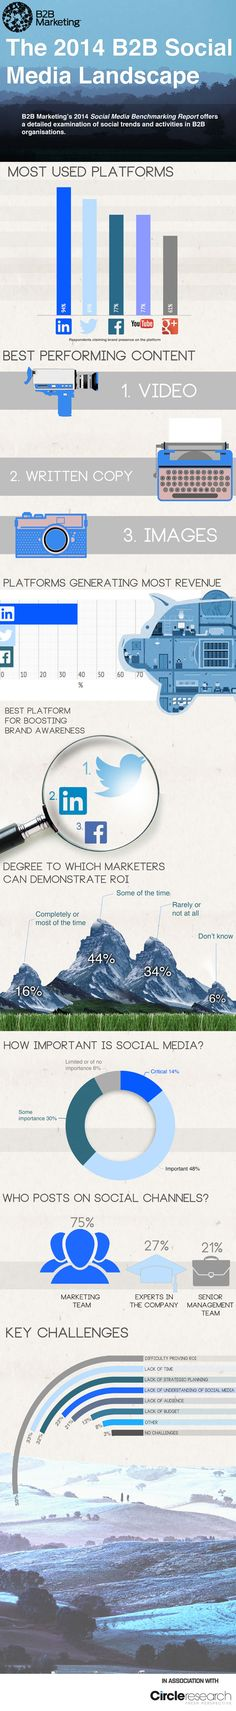 How is Social Media used for B2B marketing [Infographic]